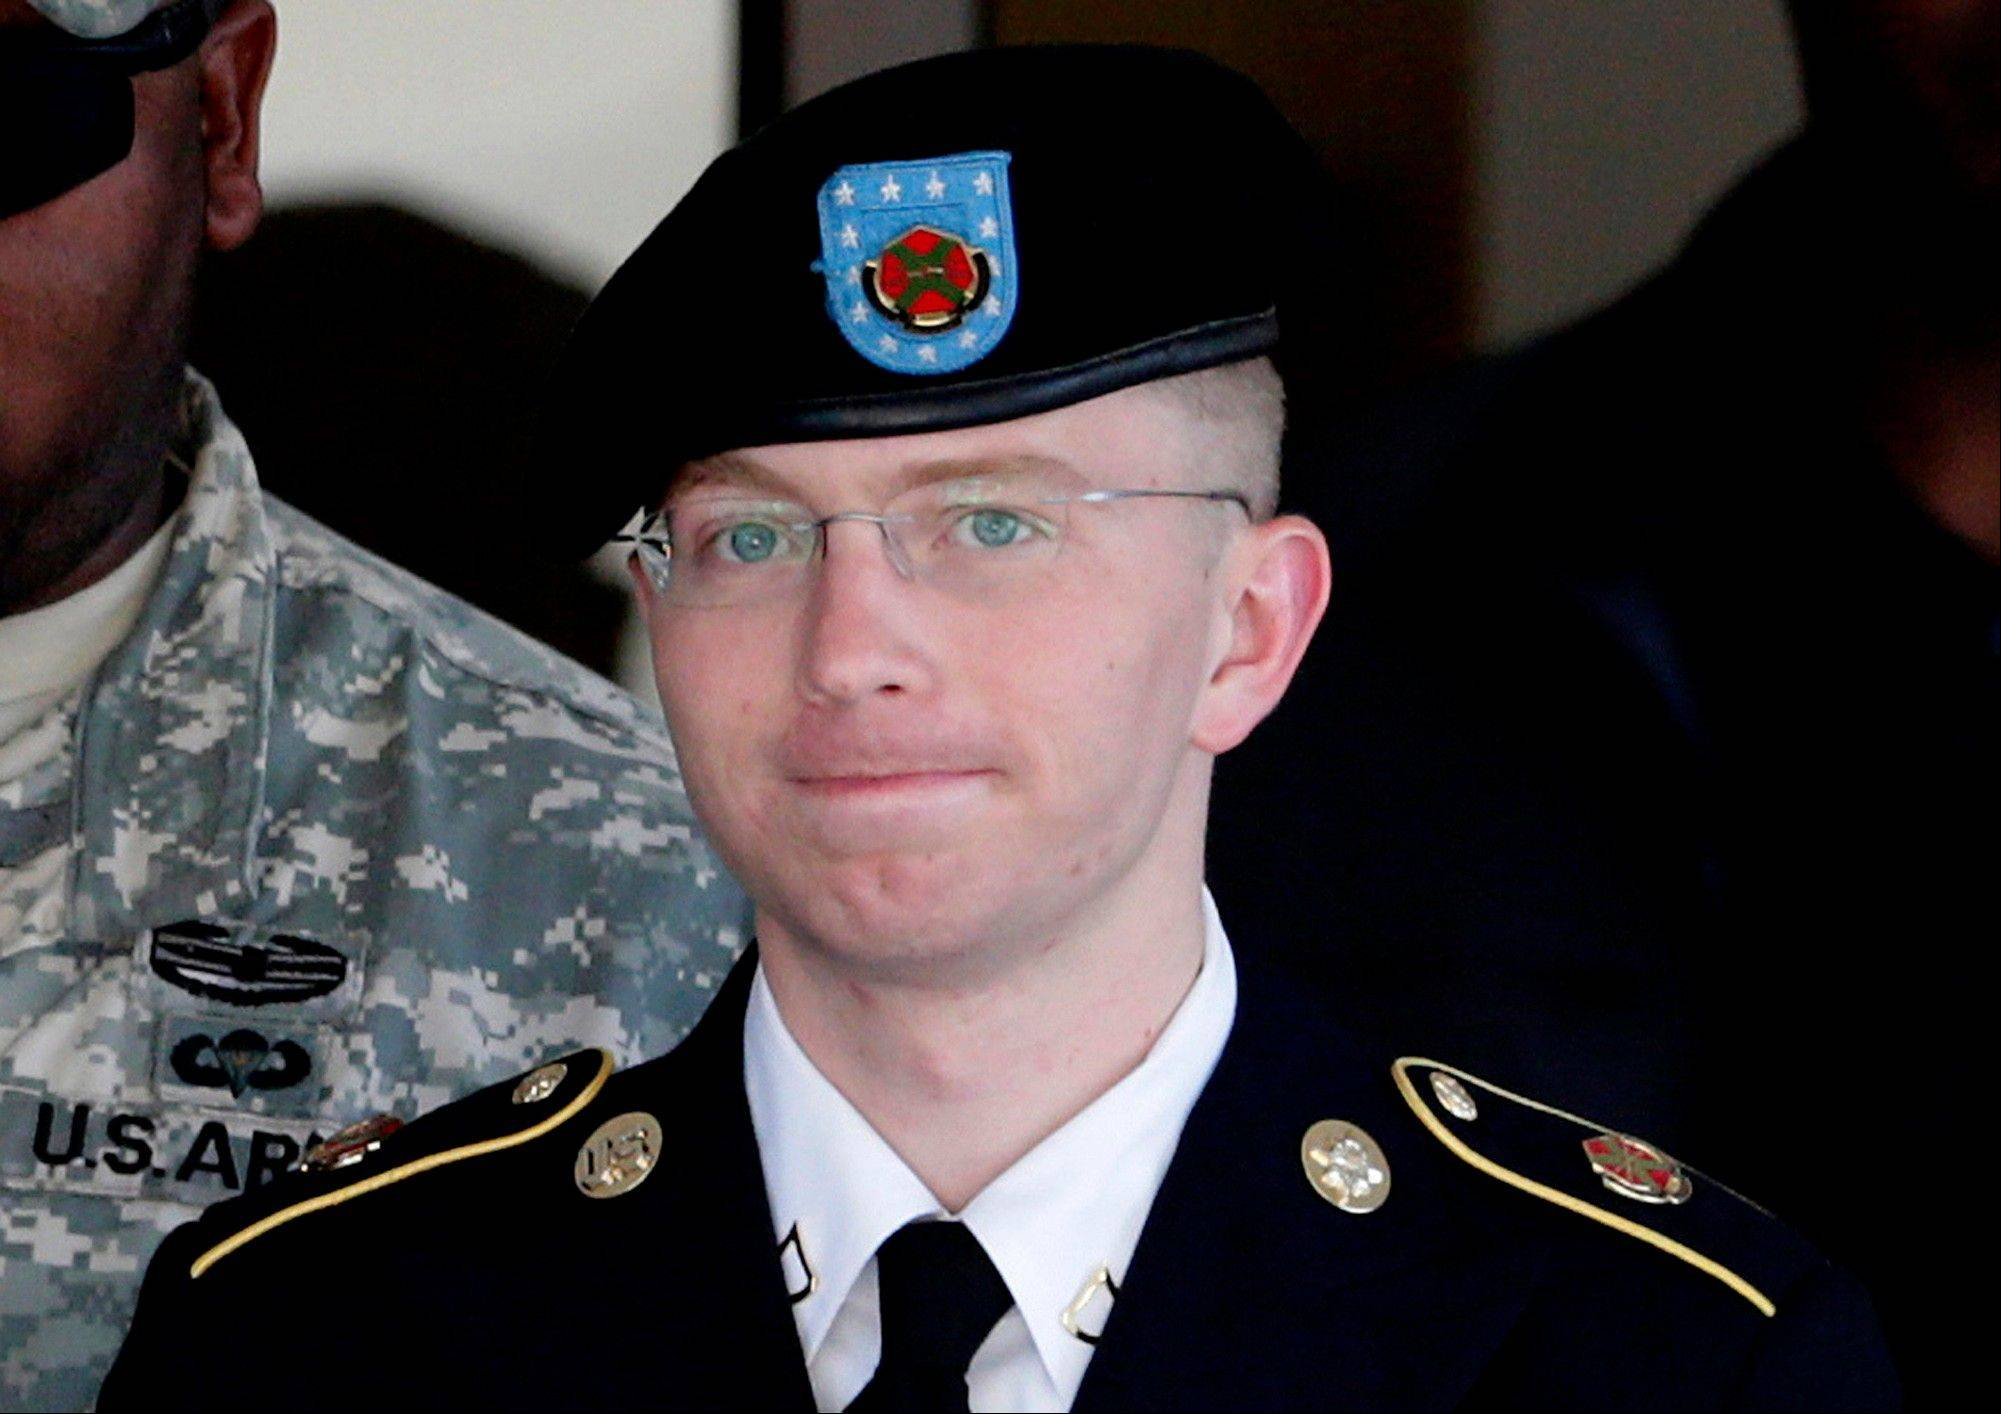 Army Pfc. Bradley Manning, right, is escorted out of a courthouse in Fort Meade, Md. The Army private charged in the largest leak of classified material in U.S. history said Thursday he sent the material to WikiLeaks to enlighten the public about American foreign and military policy.